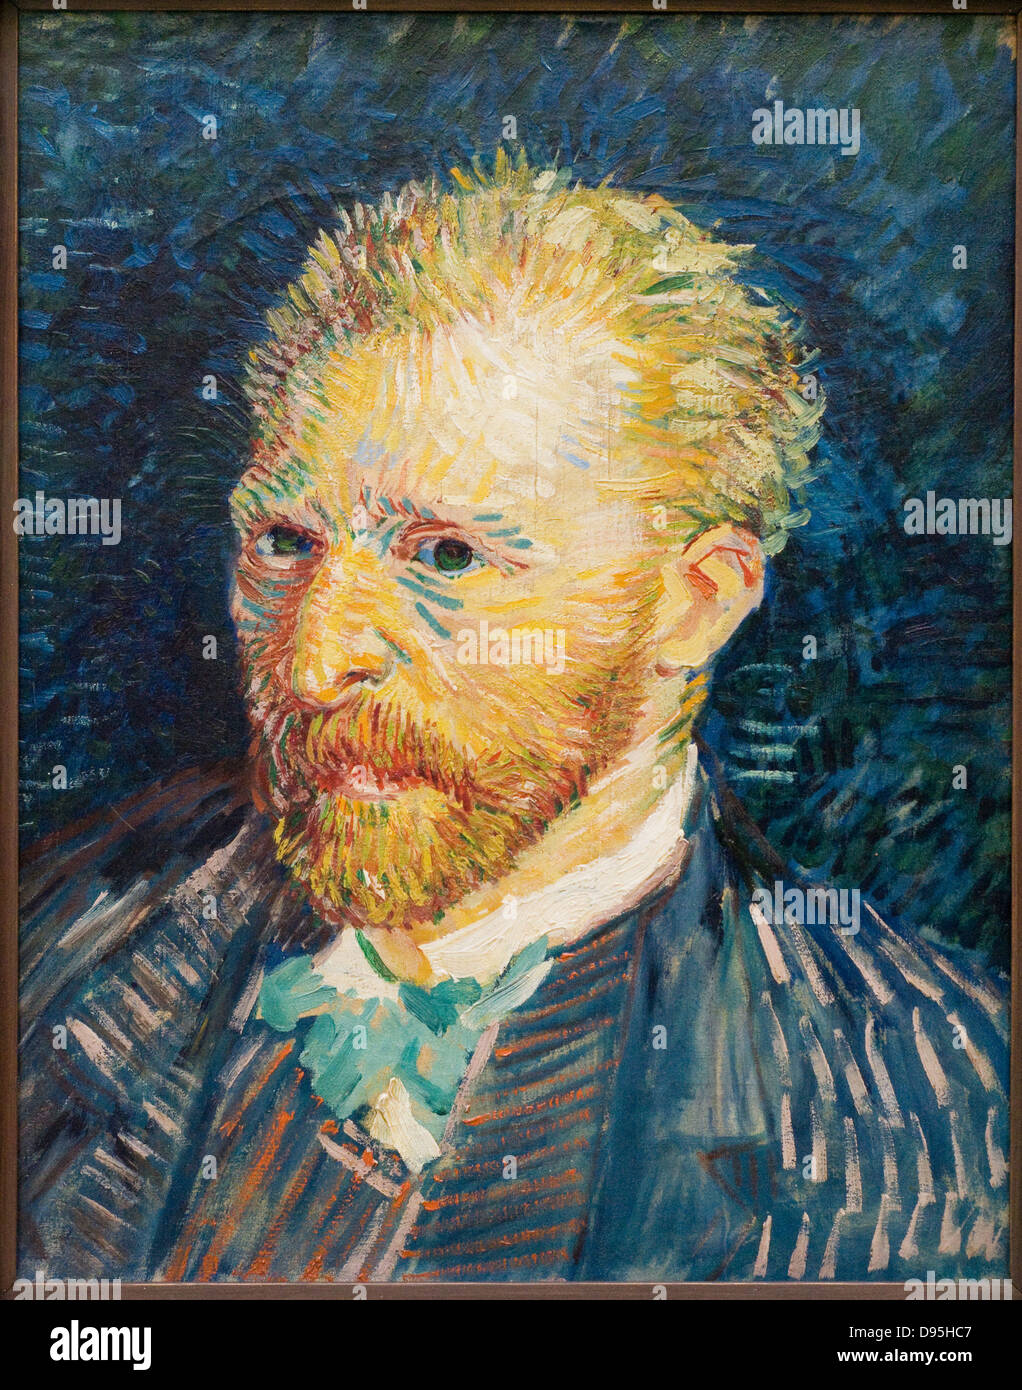 Vincent van Gogh selfportrait 1887 XIX th century Dutch school Oil on canvas Paris - Orsay Museum - Stock Image